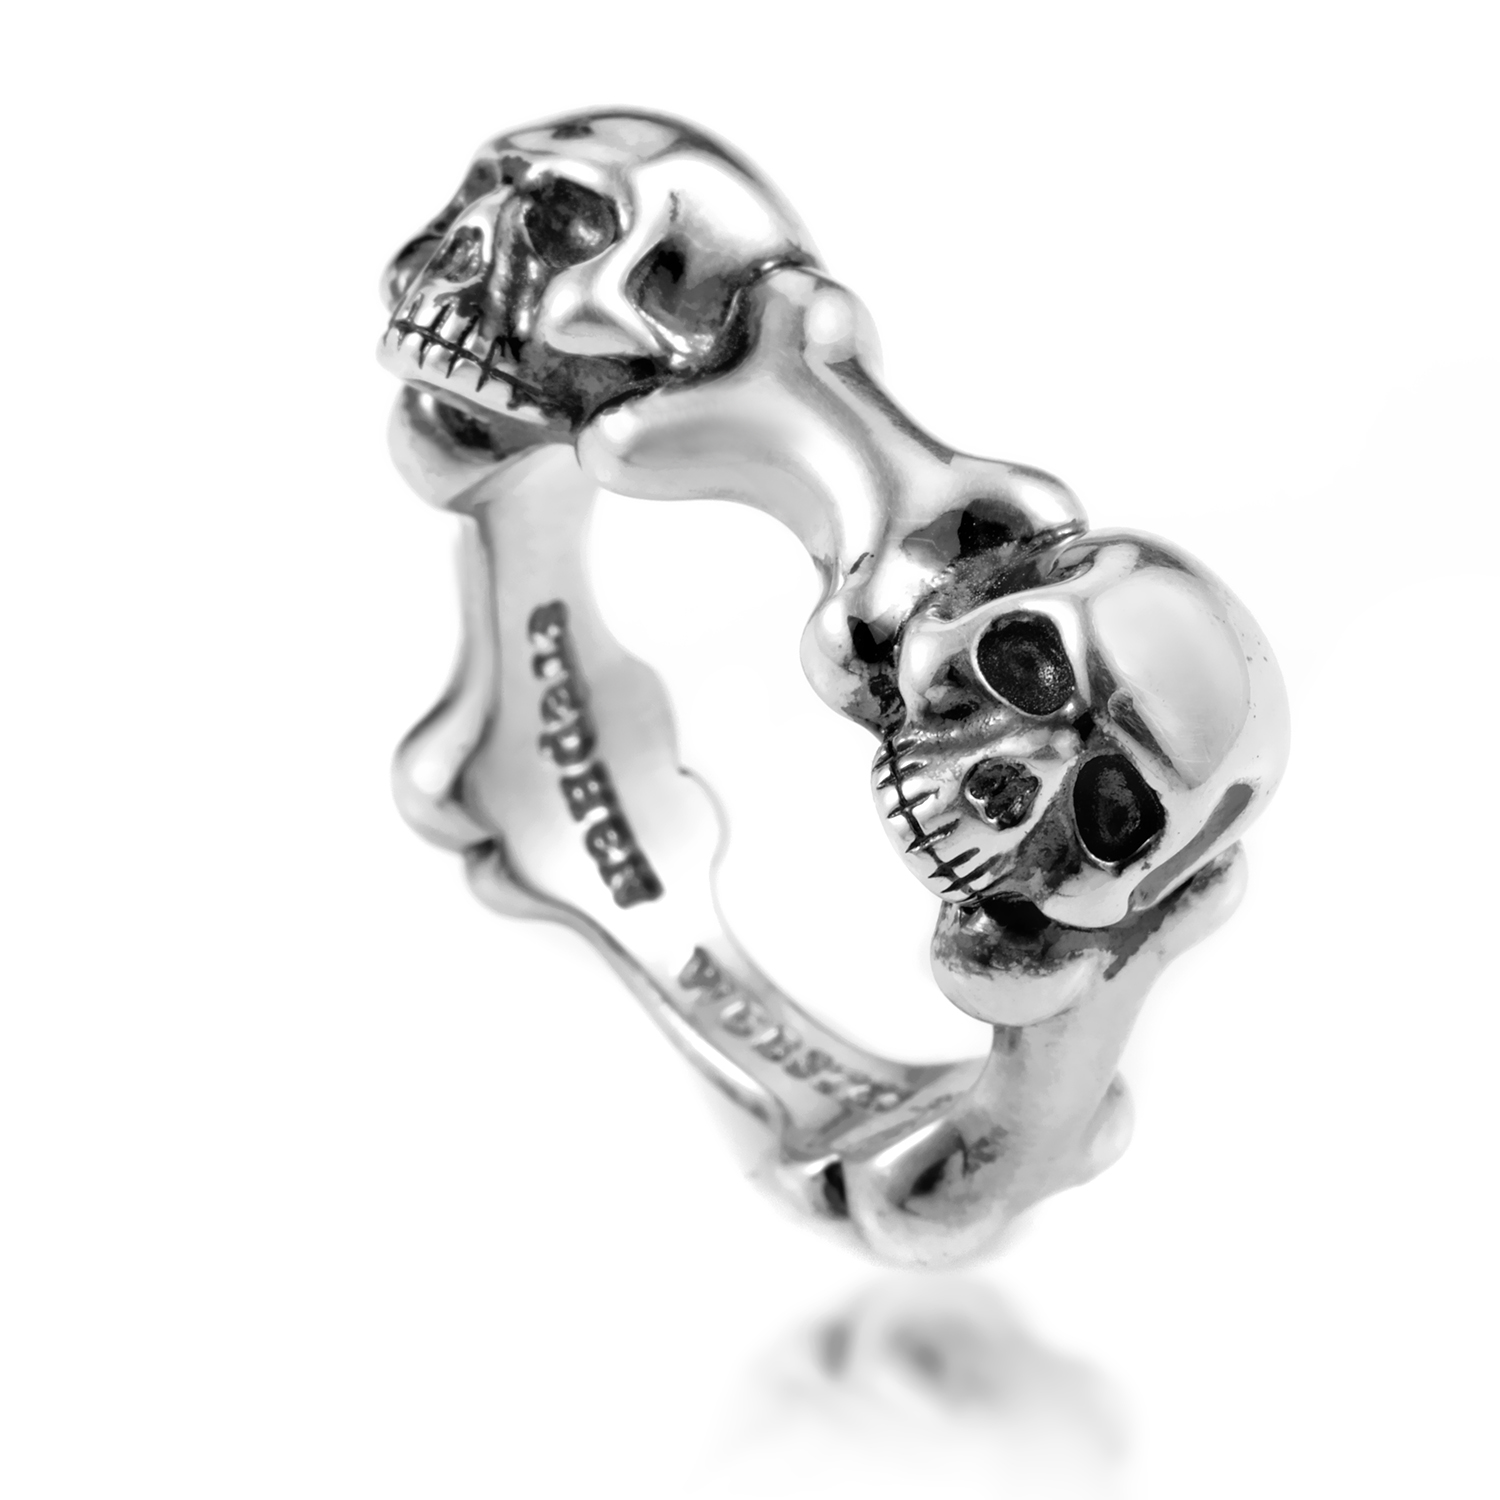 Mens Sterling Silver Skull and Bones Ring 3005317